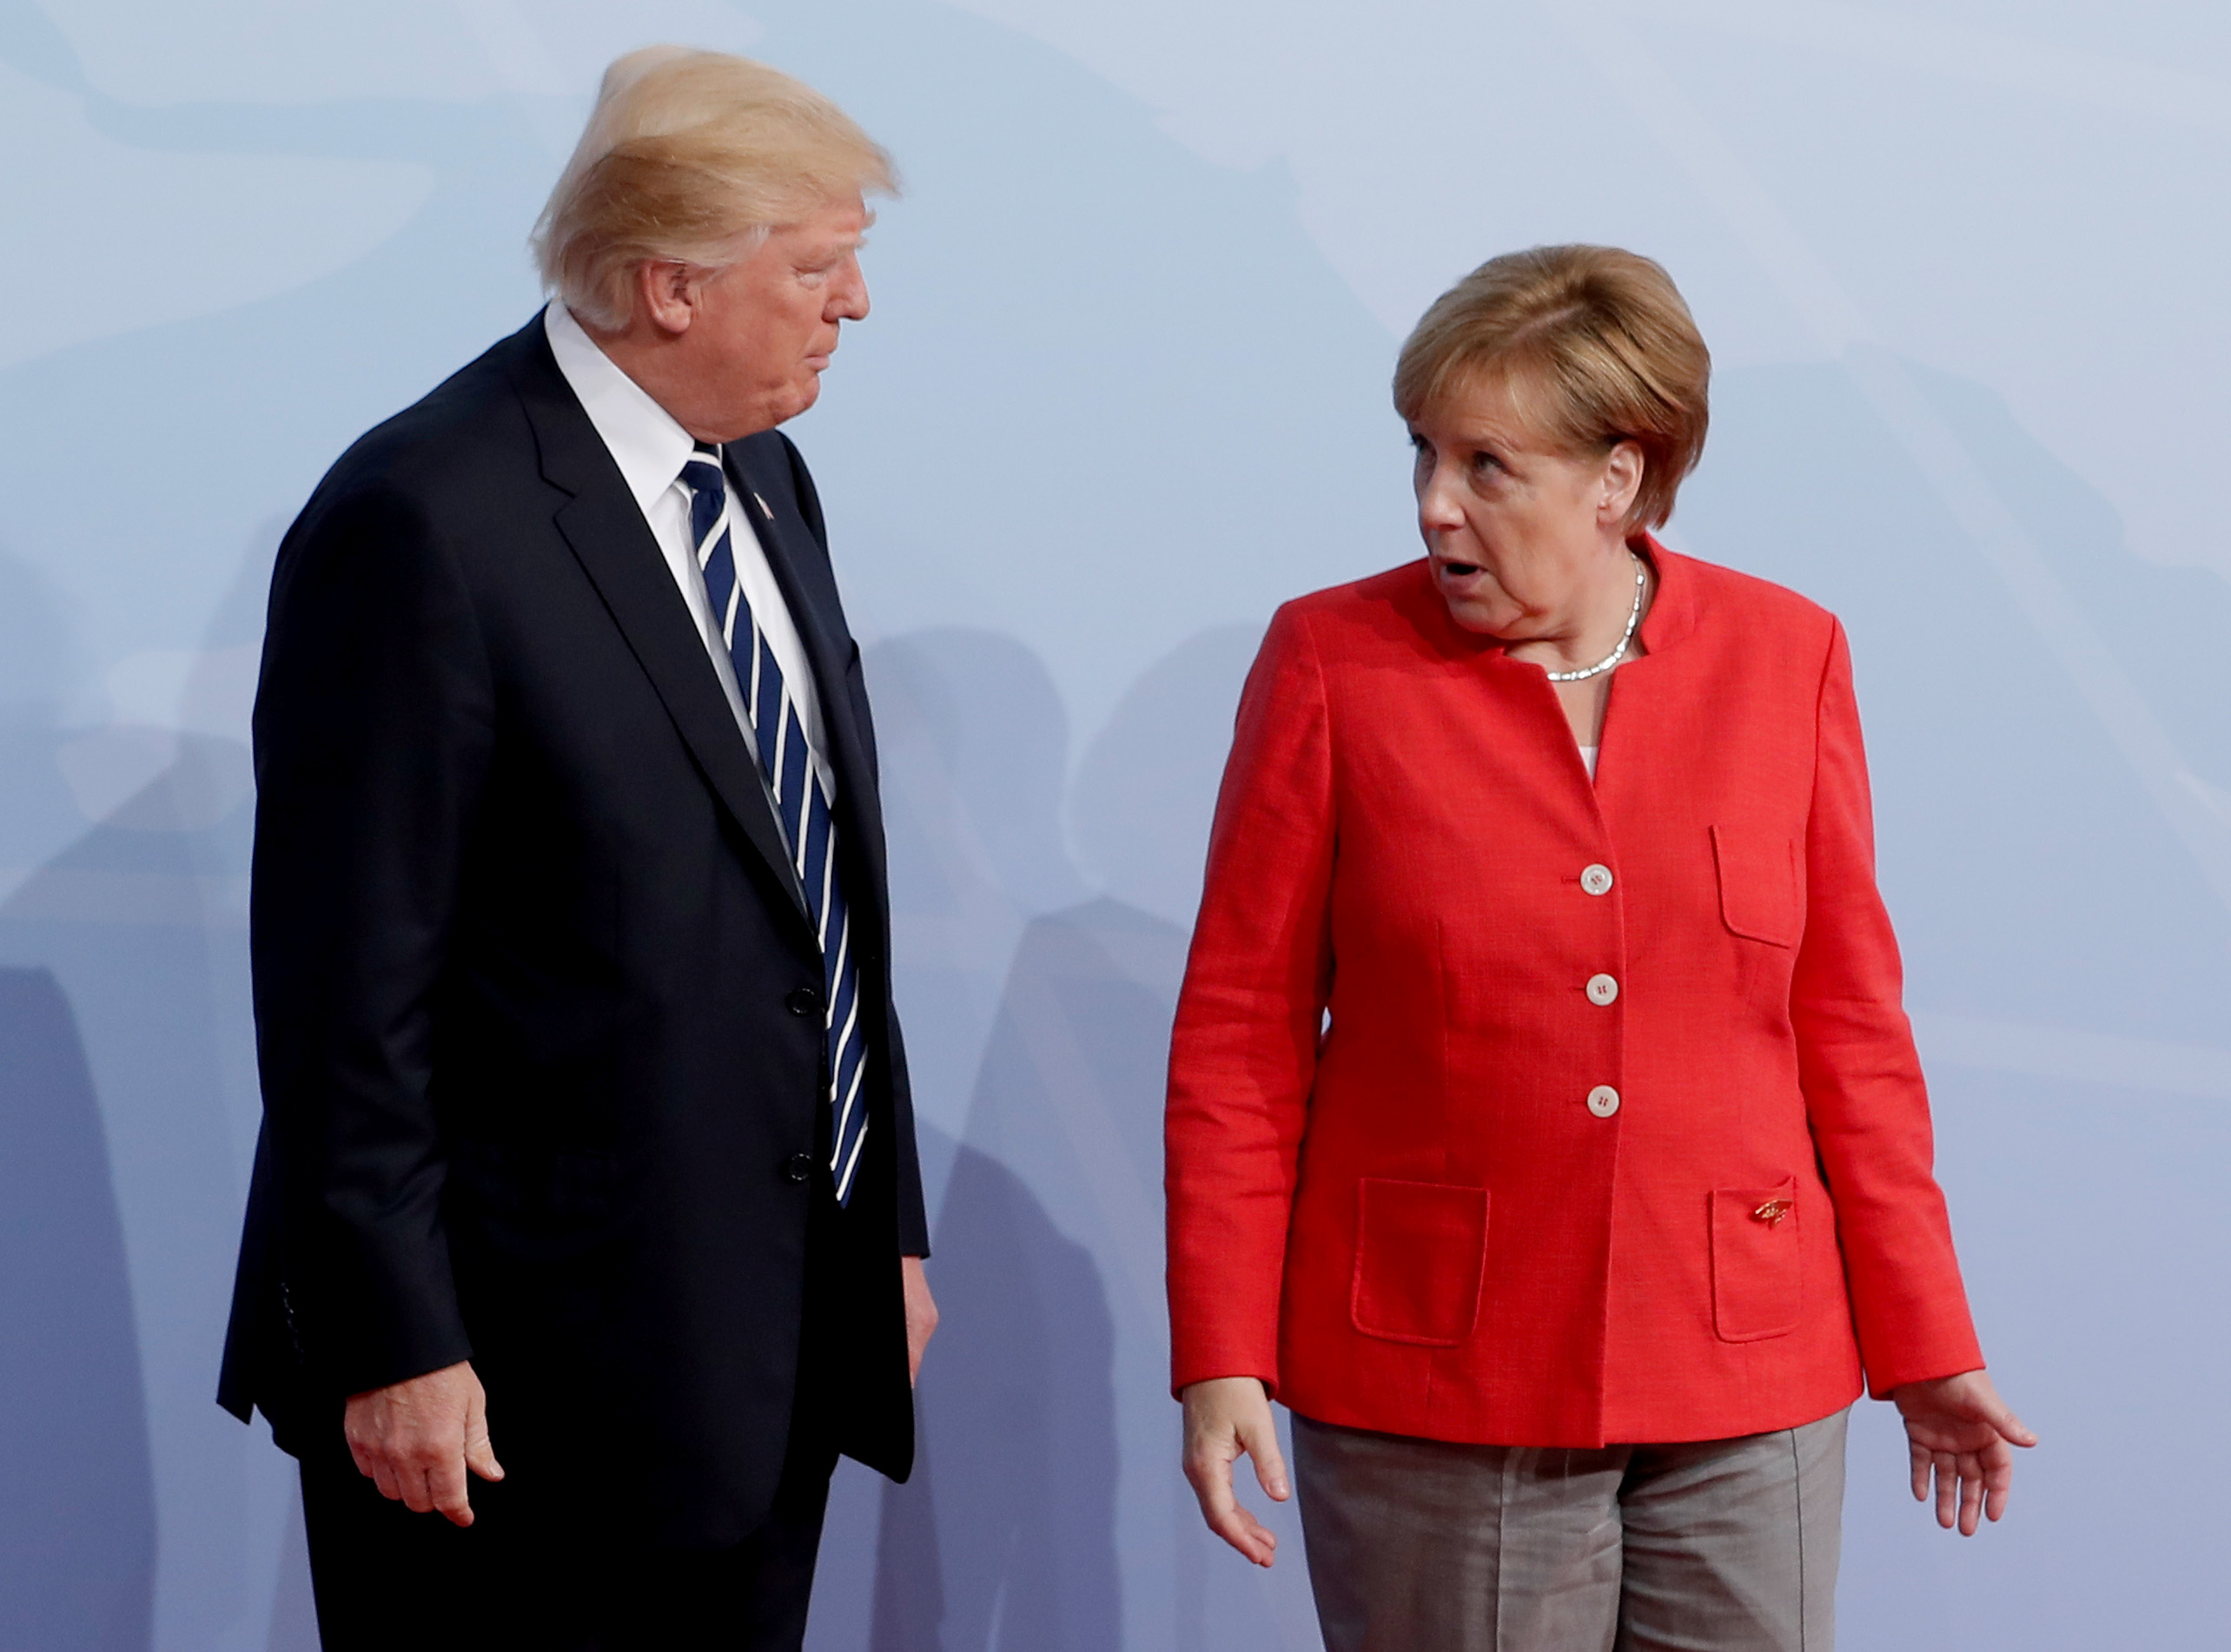 German Chancellor Angela Merkel welcomes U.S. President Donald Trump to the opening day of the G20 leaders summit in Hamburg, Germany, July 7, 2017.  REUTERS/Ian Langsdon/Pool - RC16DEBCE8C0